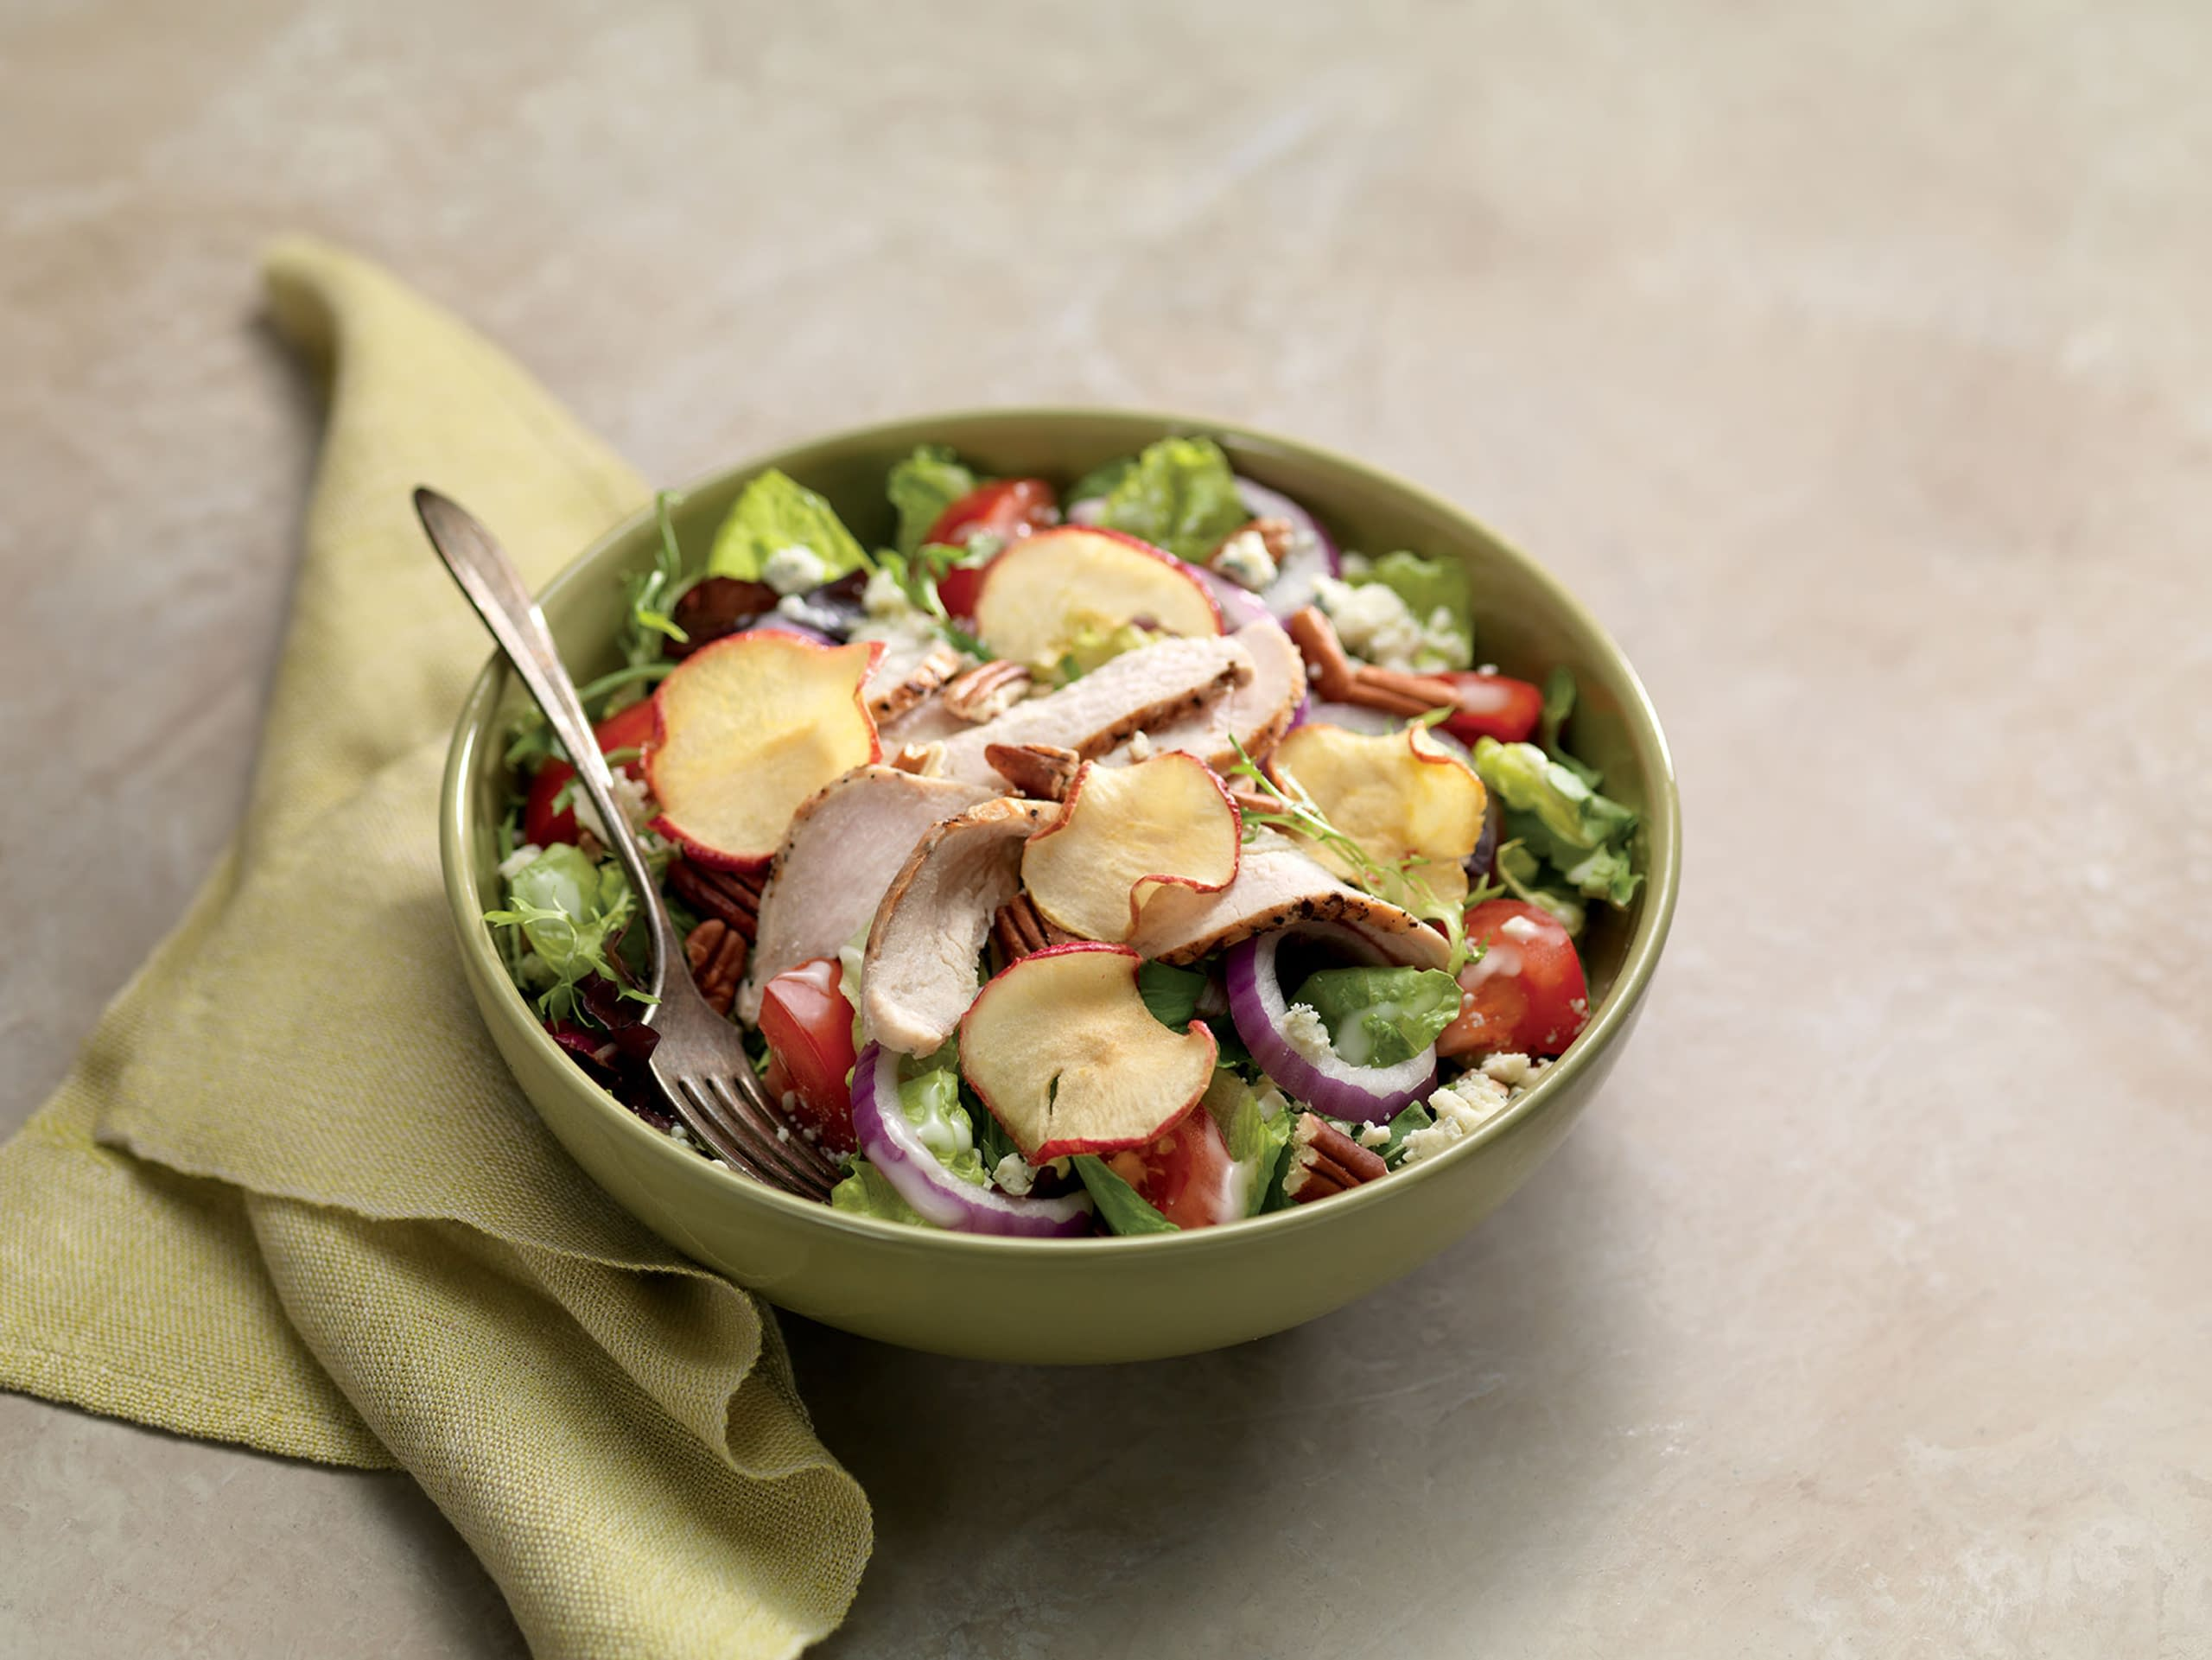 Fuji Apple Green Salad with Chicken